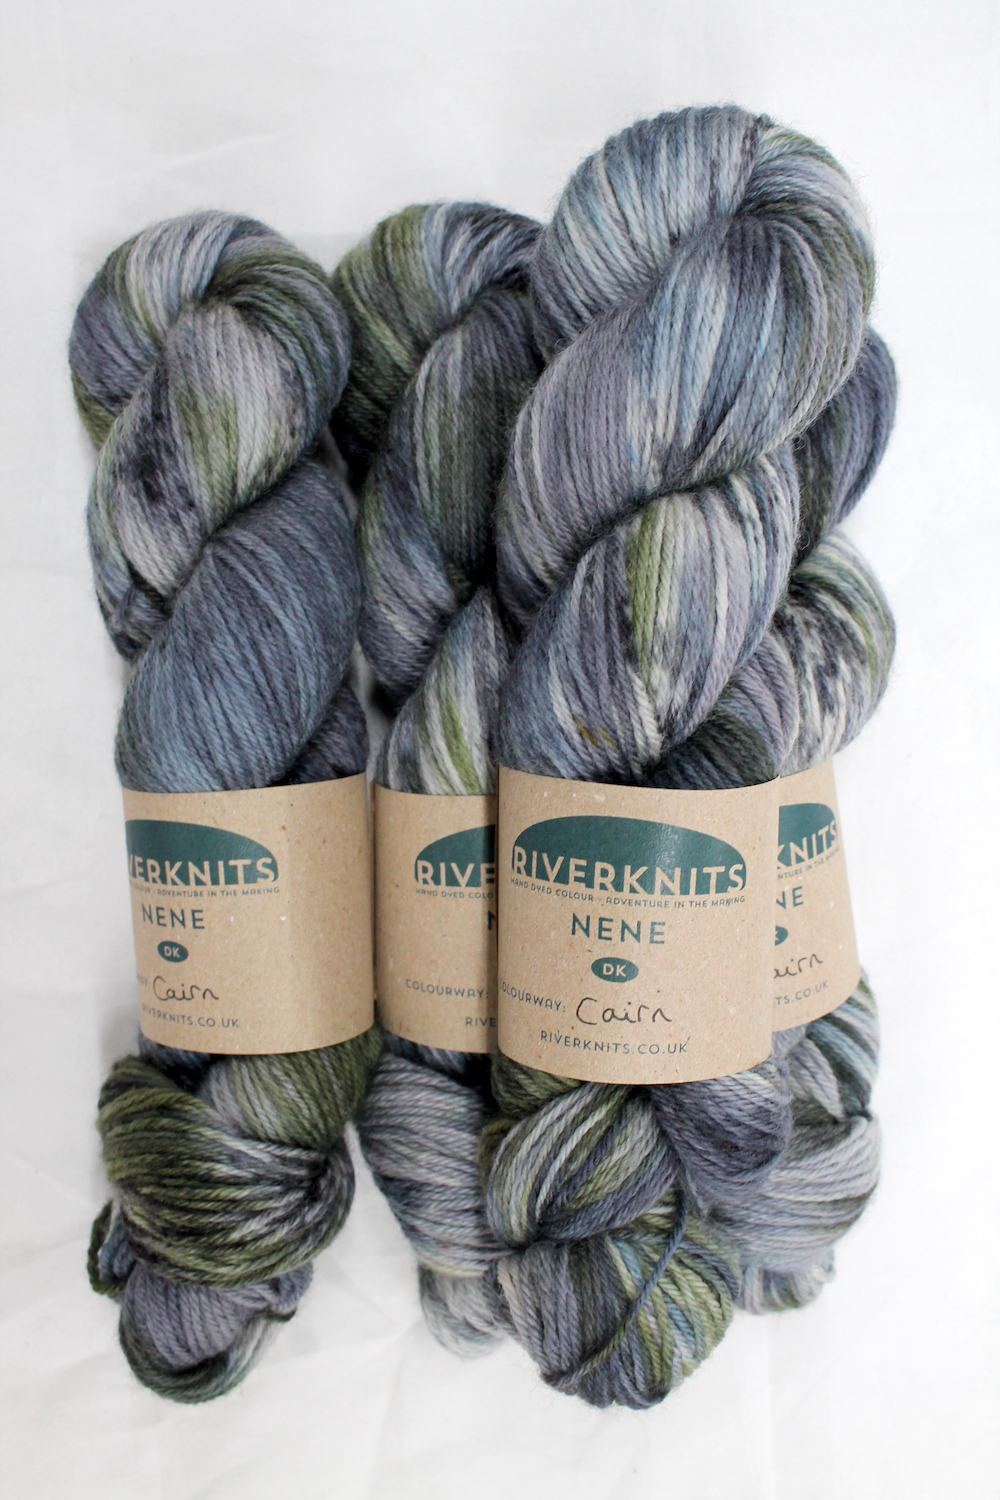 A pile of skeins of Nene DK in variegated greys, slate blue-grey, and moss green